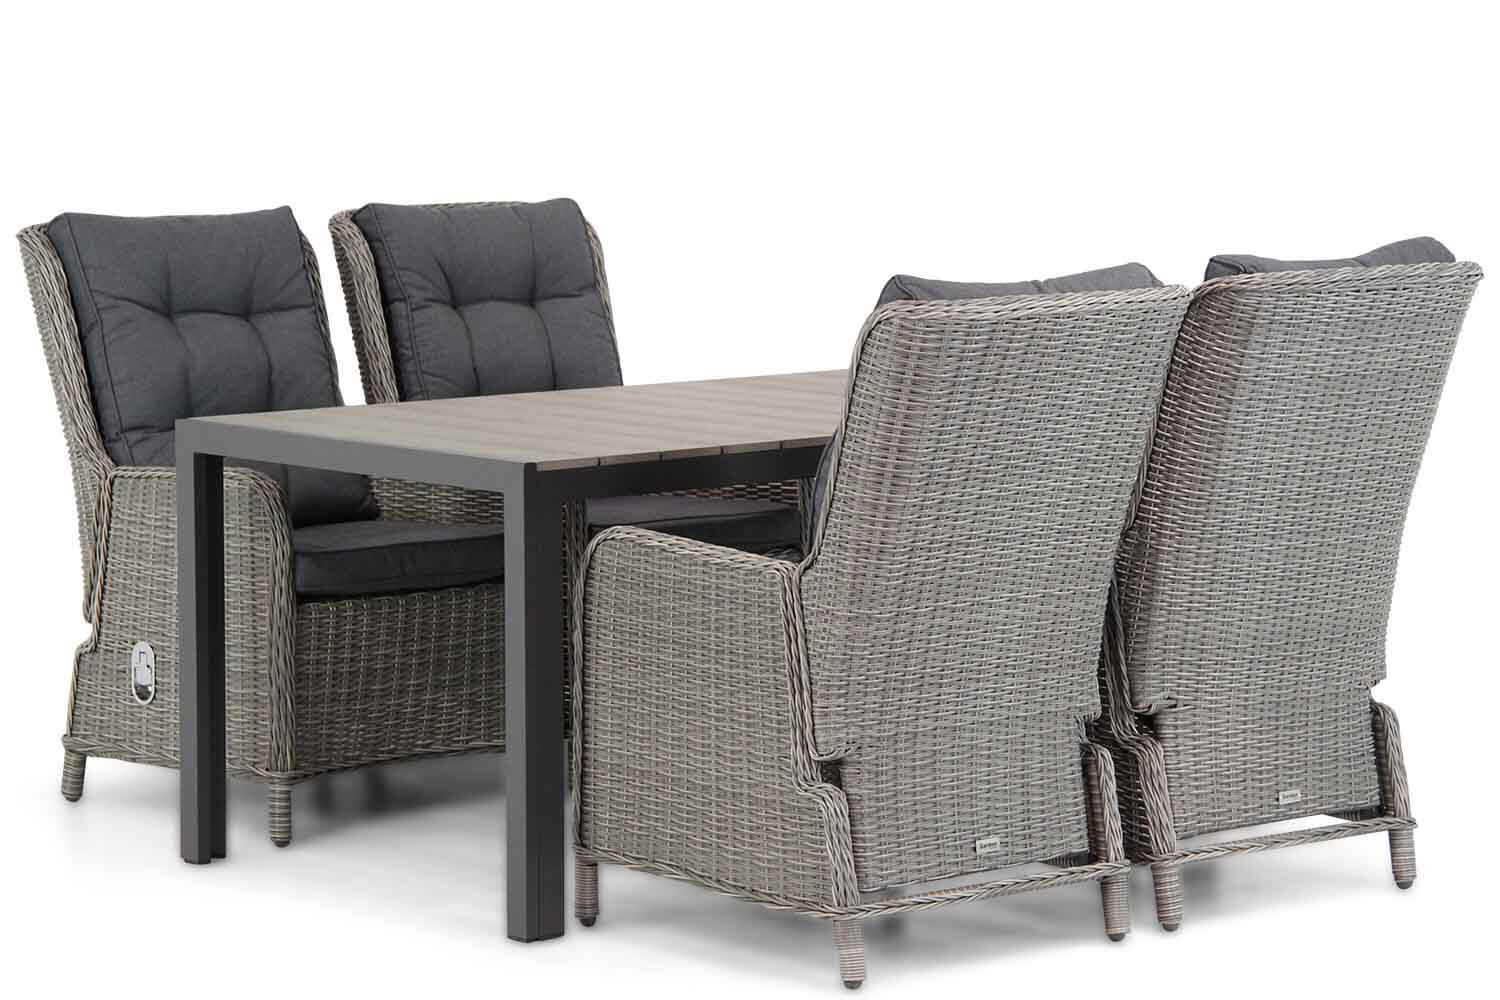 Garden Collections Kingston/Young 155cm dining tuinset 5-delig